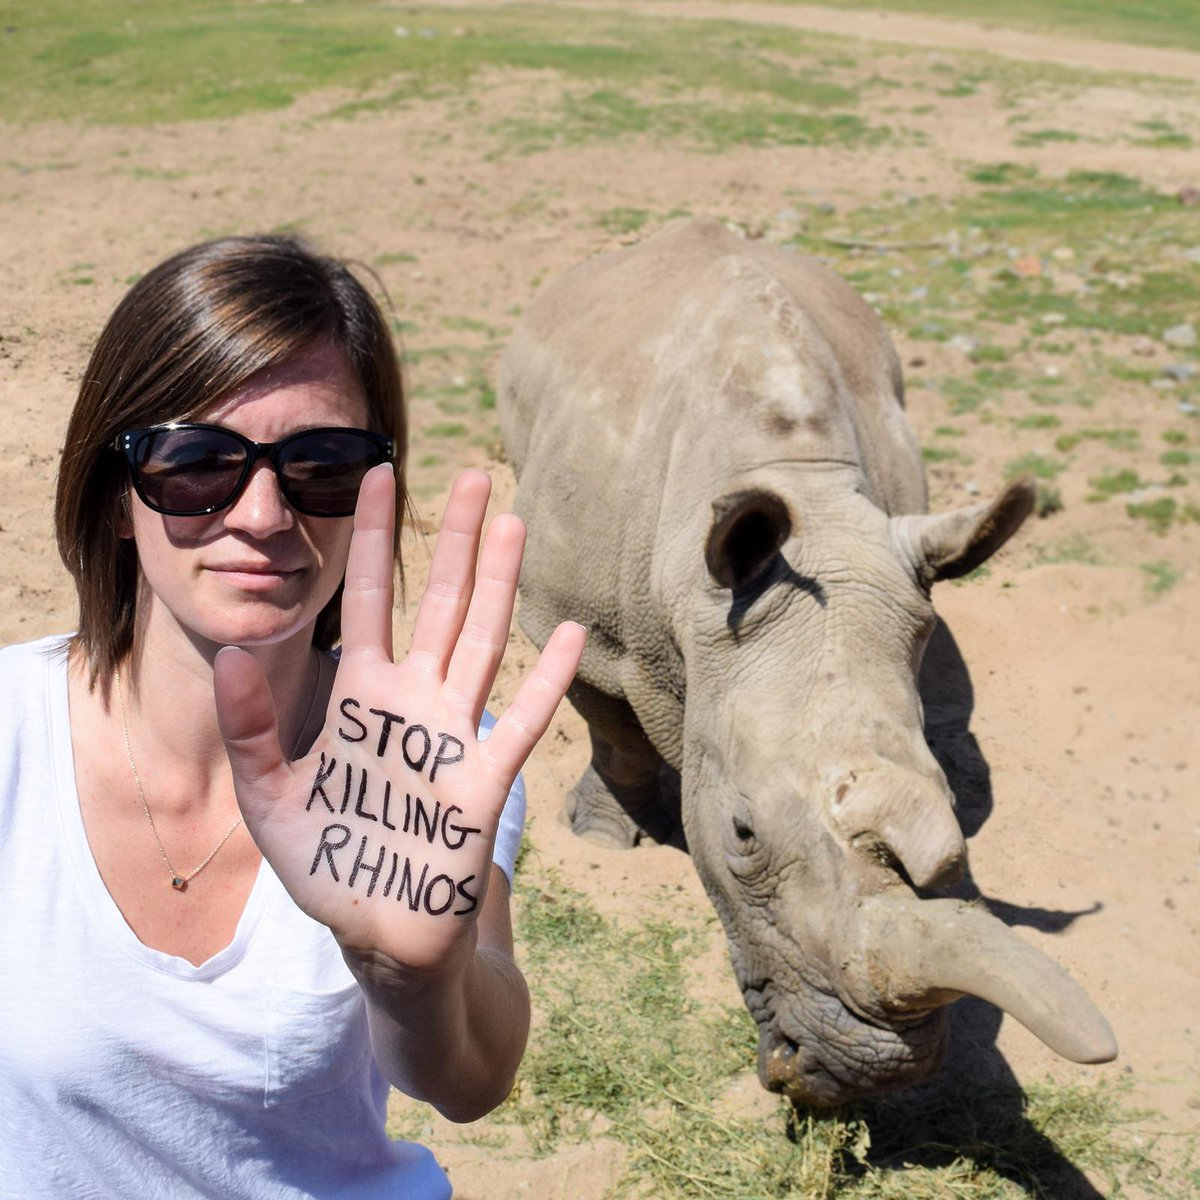 .@rickygervais please lend a hand & spread the word about the plight of rhinos. #Rally4Rhinos http://t.co/m37euRZpBU http://t.co/6TuI5laxLF